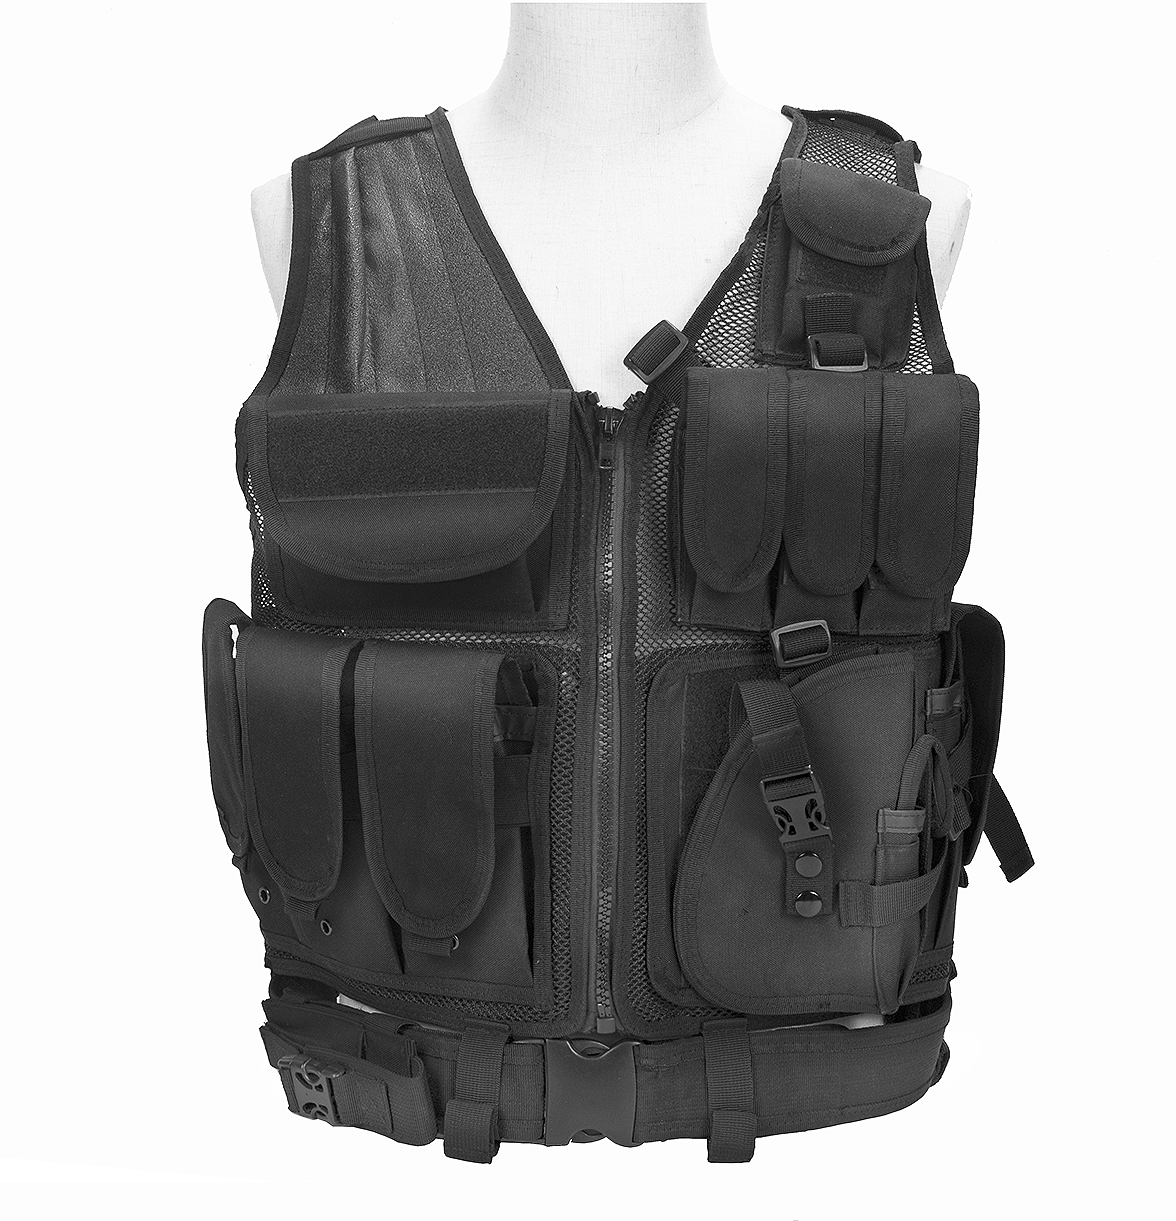 Military Combat Security Guard Tactical Vest With Universal Pistol Holster And Mesh Design